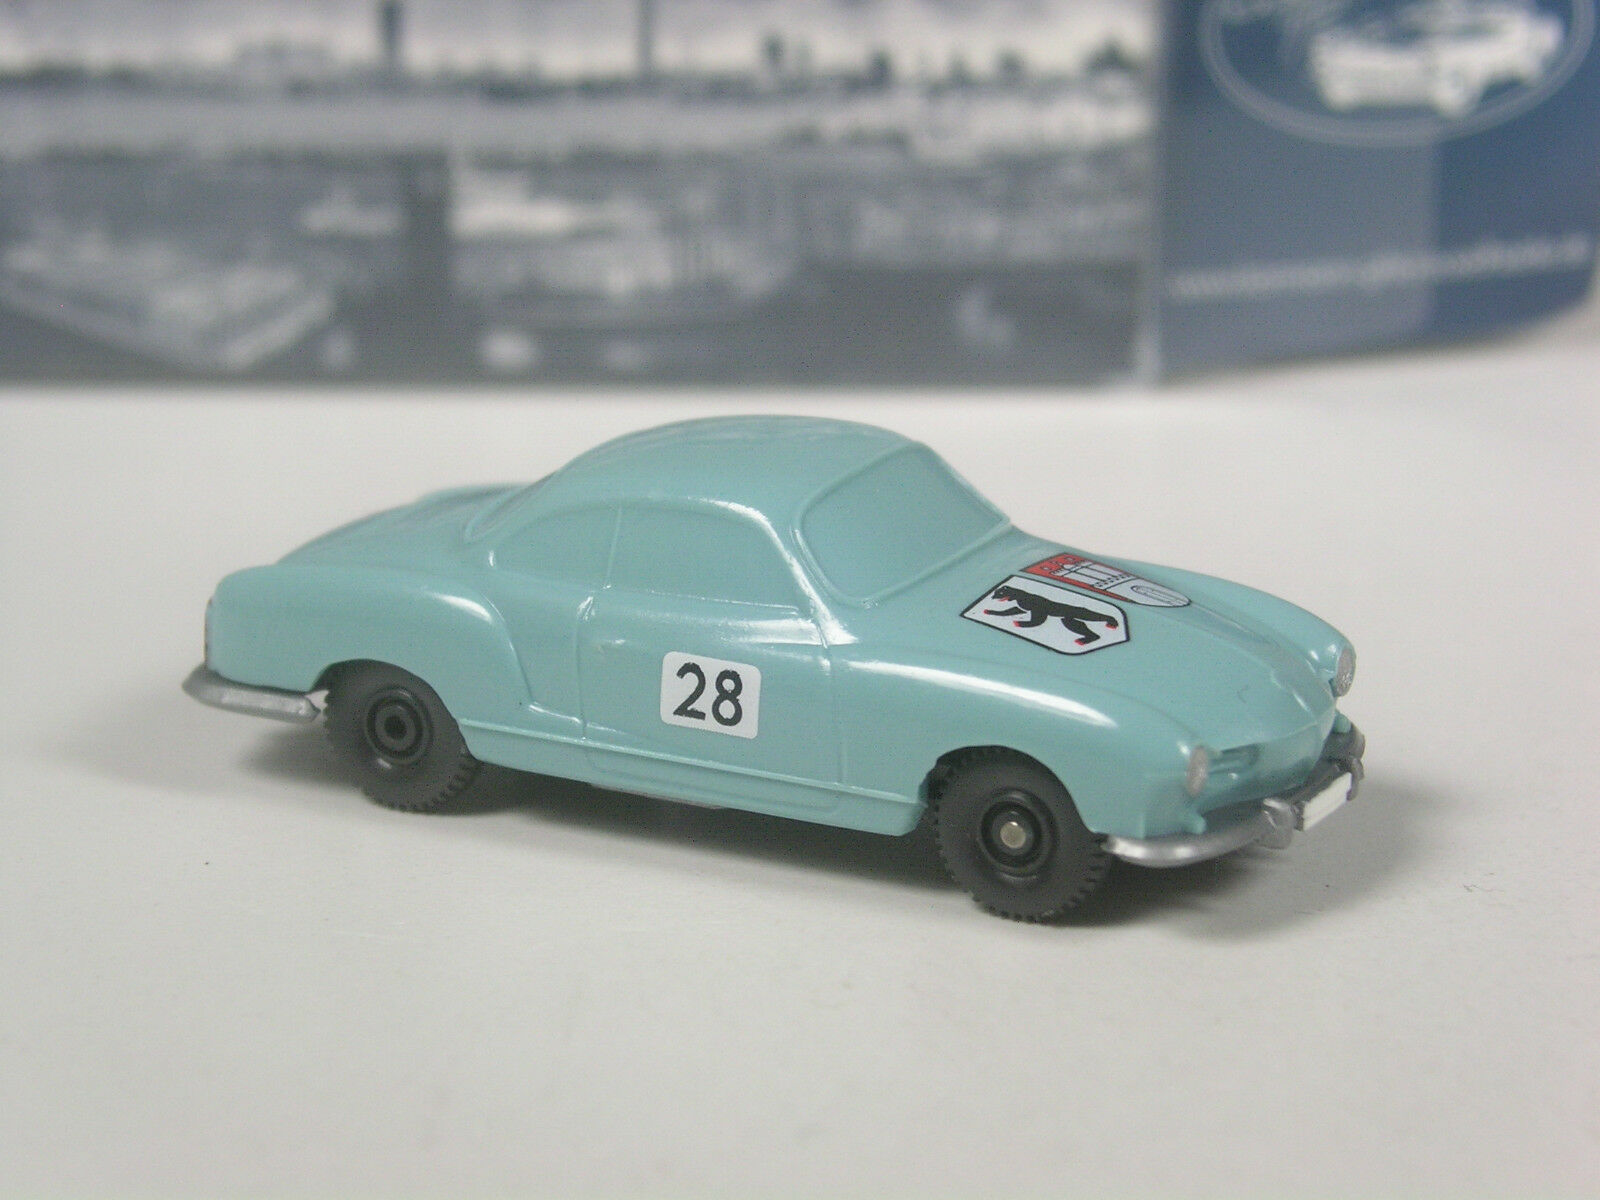 TOP  Wiking Werbemodell VW Karmann Ghia Rallye Hamburg Berlin in OVP